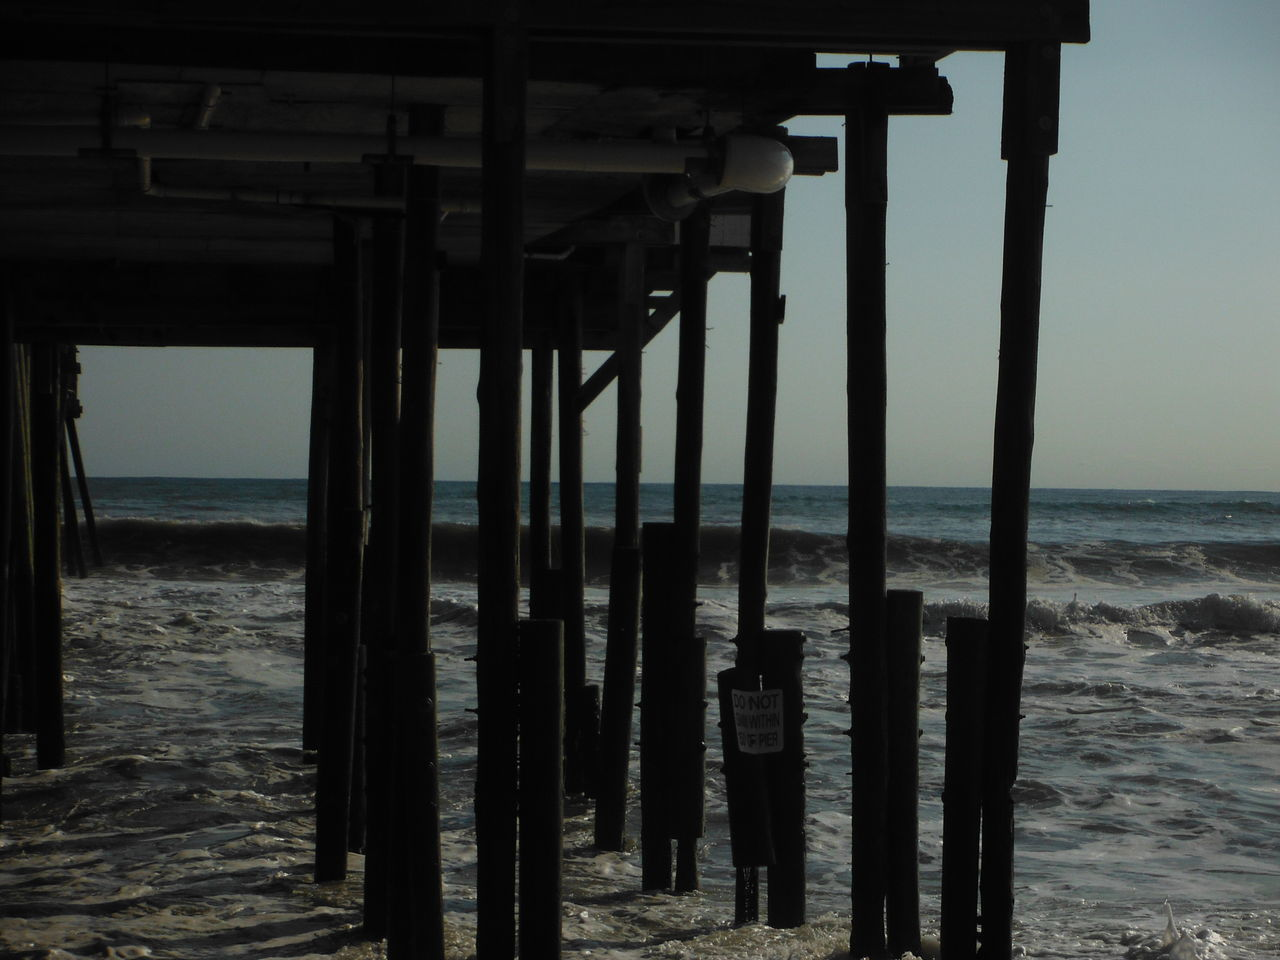 sea, water, strength, horizon over water, beach, nature, underneath, no people, outdoors, sky, day